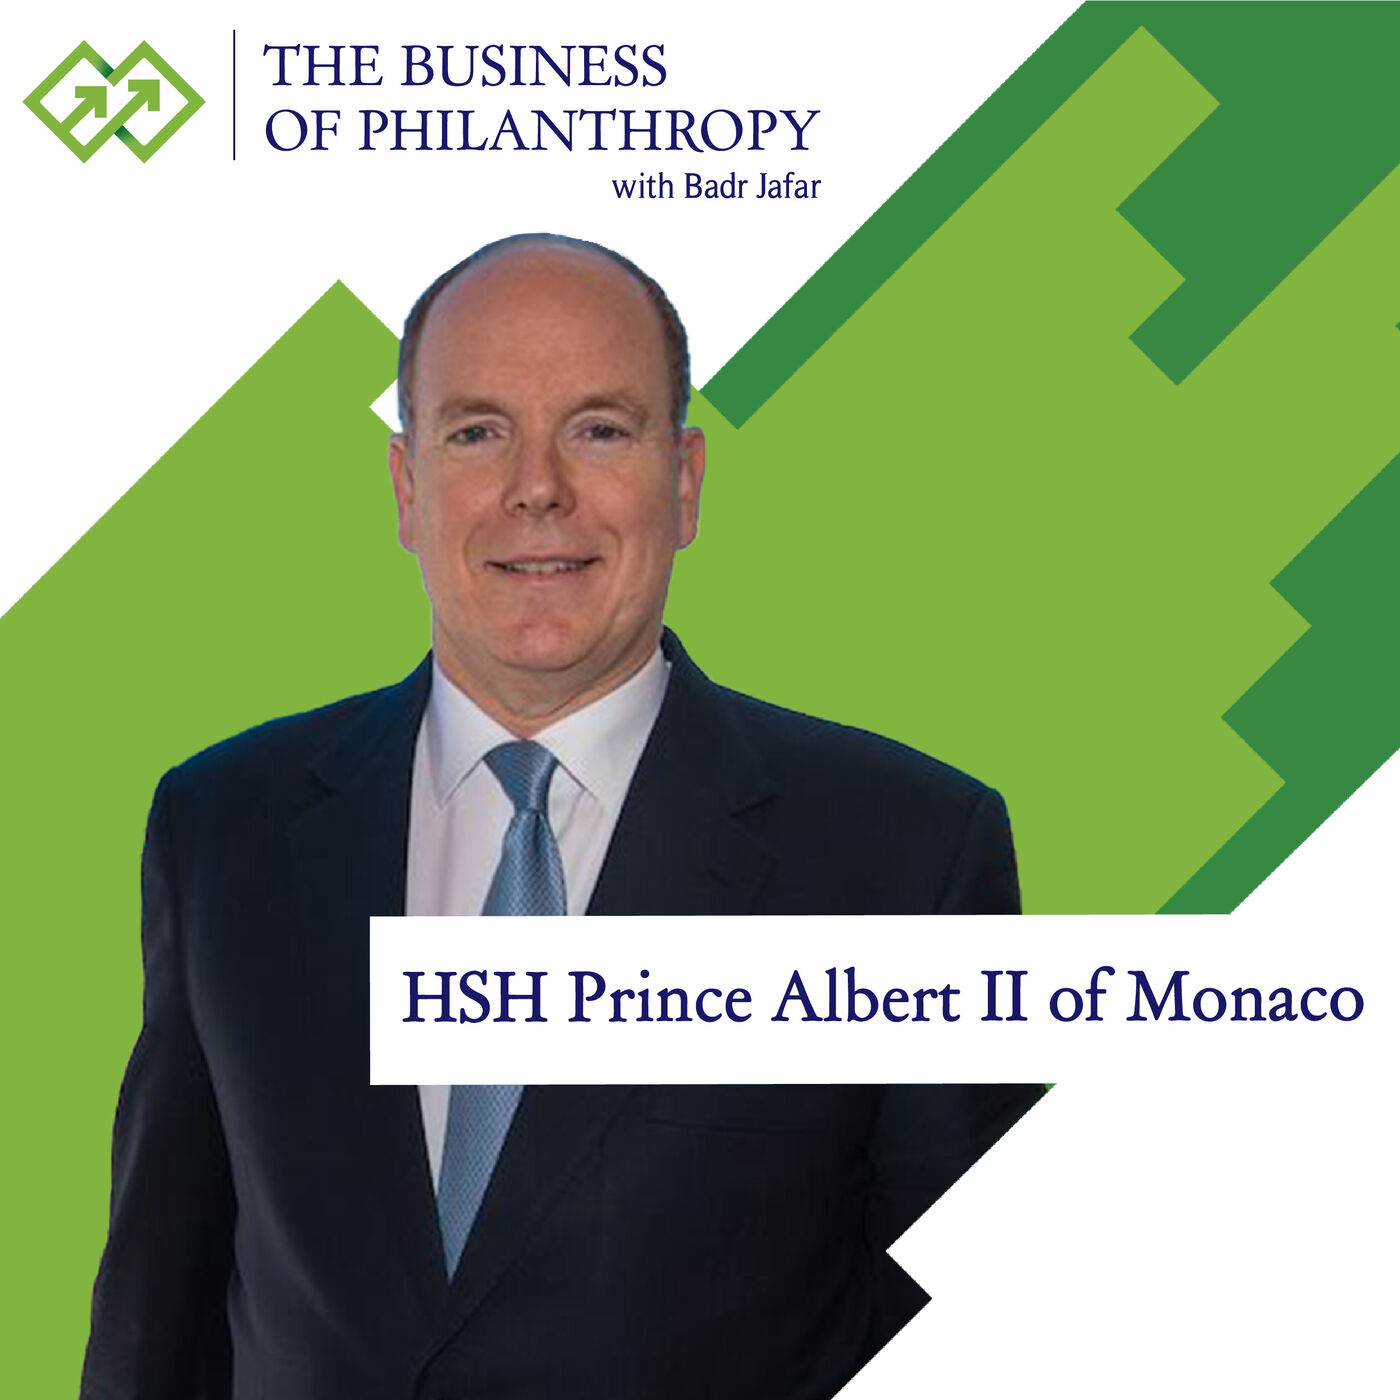 HSH Prince Albert II of Monaco; A Conversation with Badr Jafar